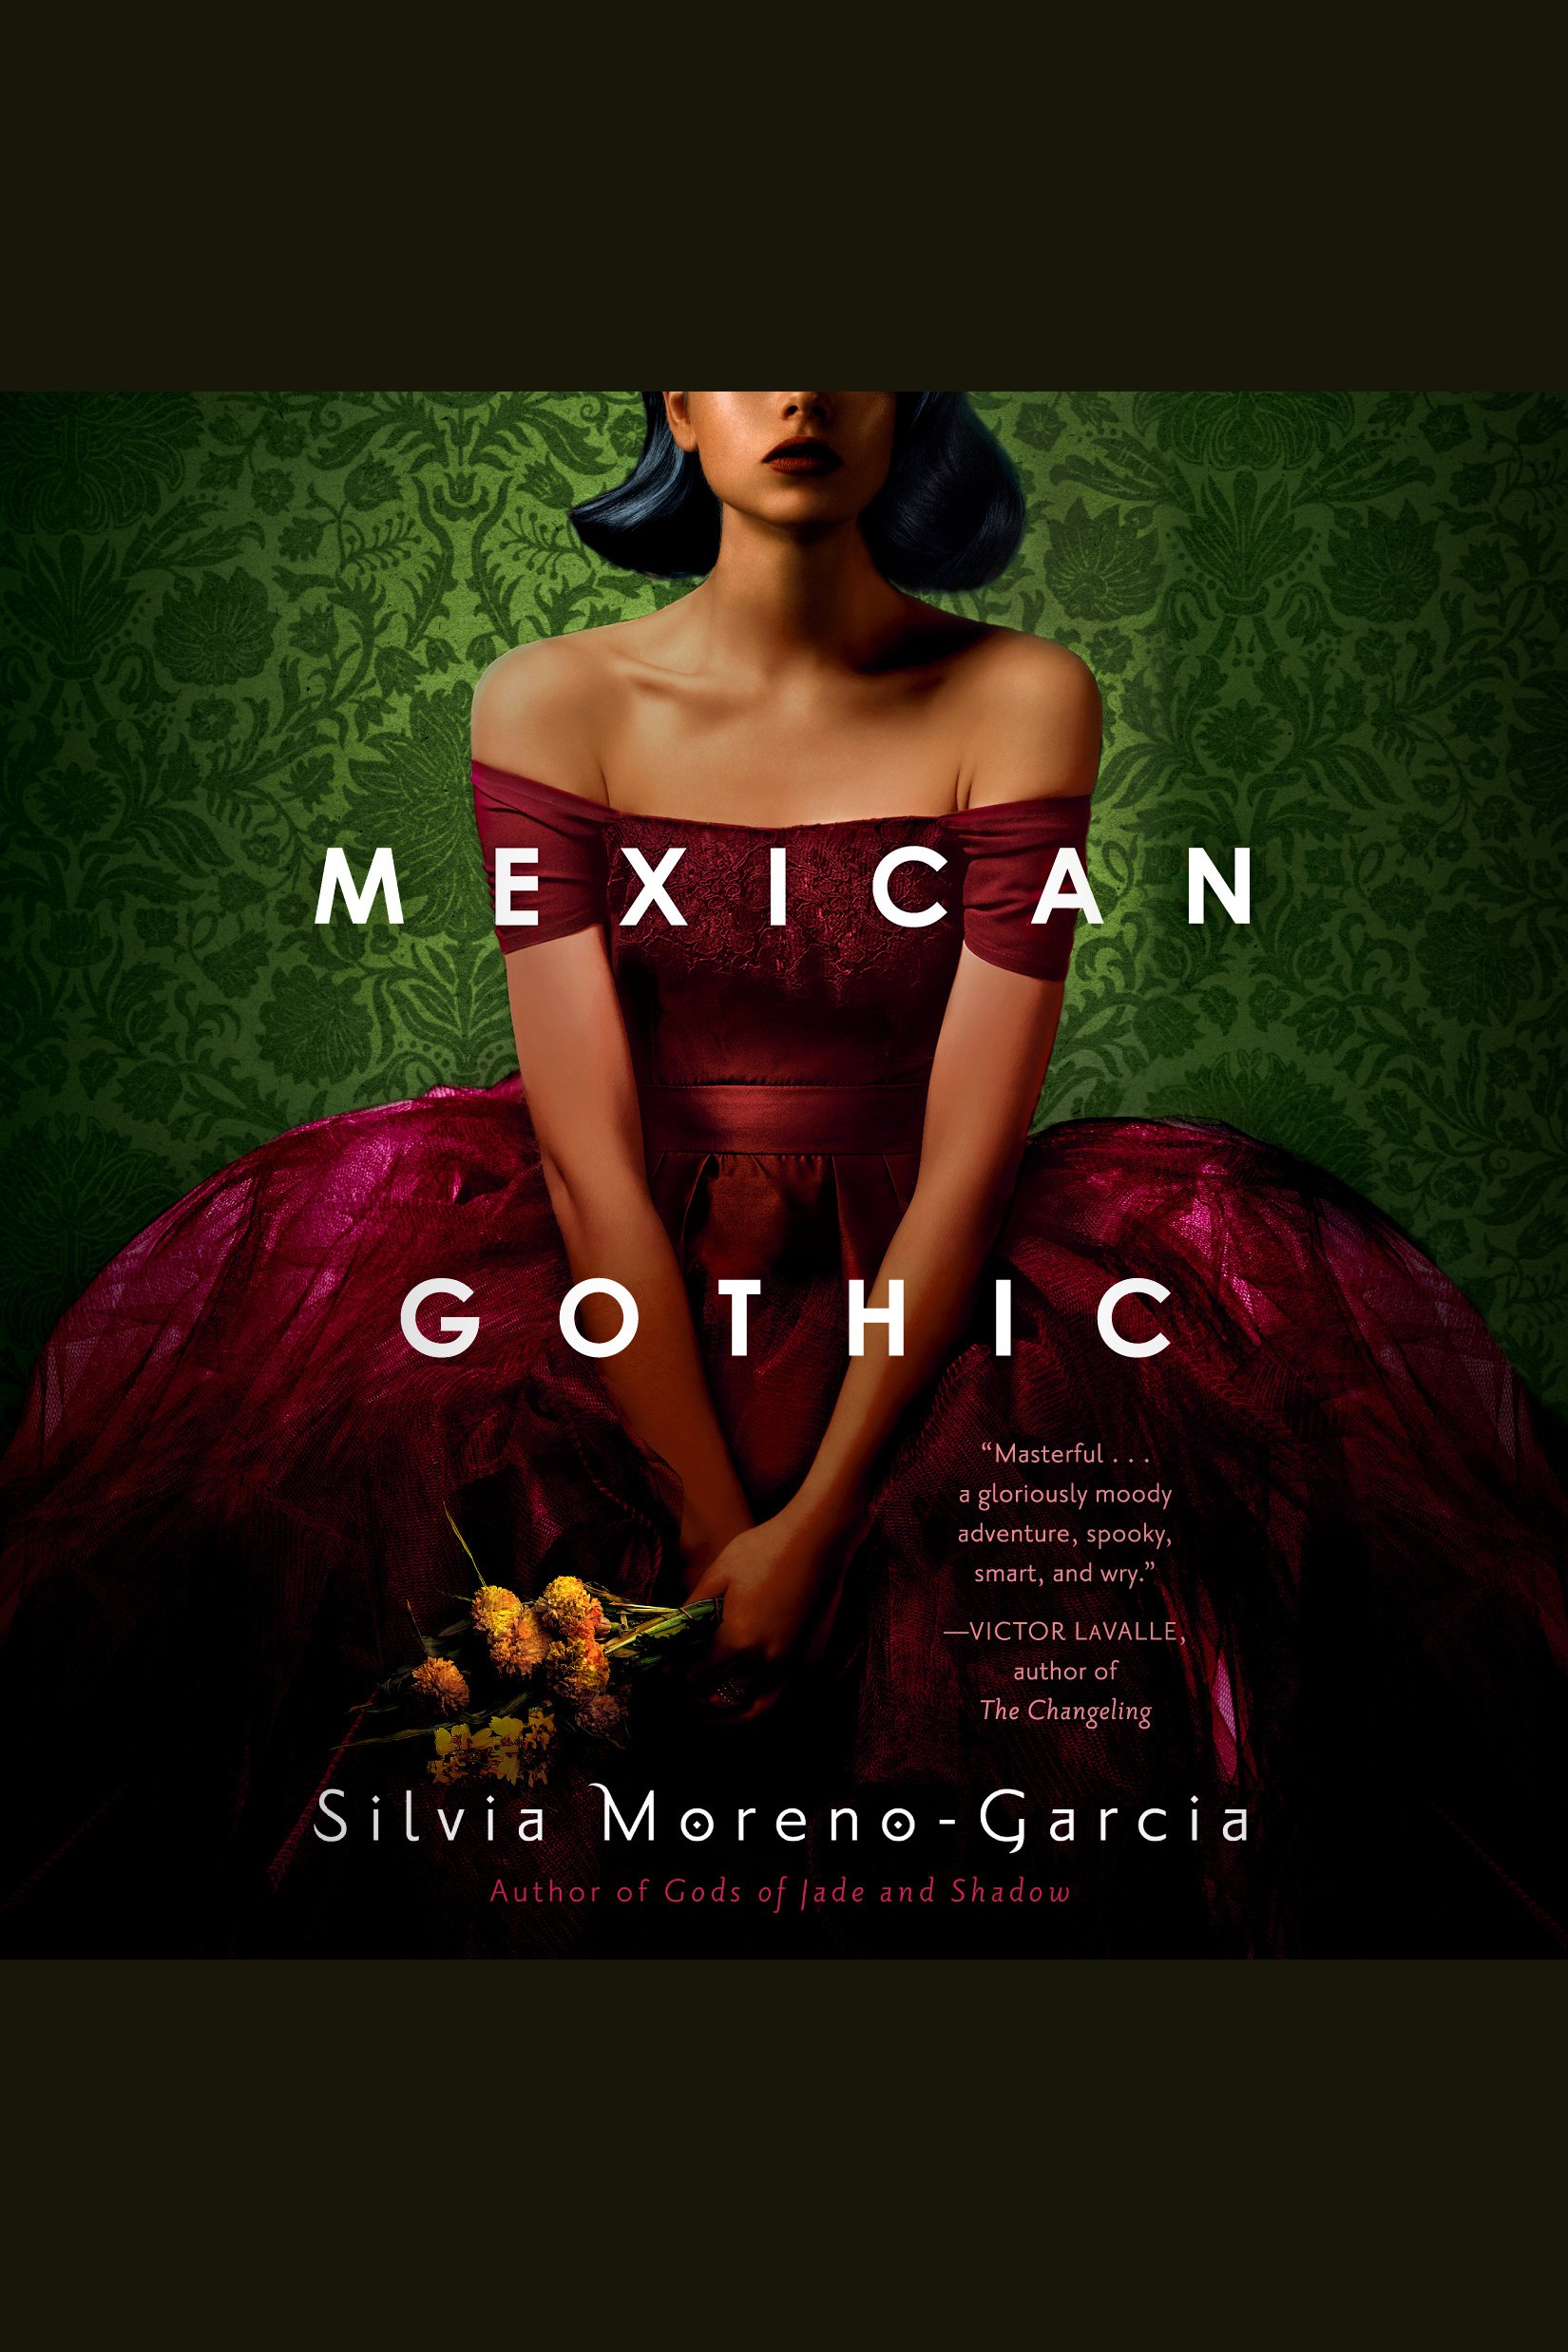 Cover Image of Mexican Gothic